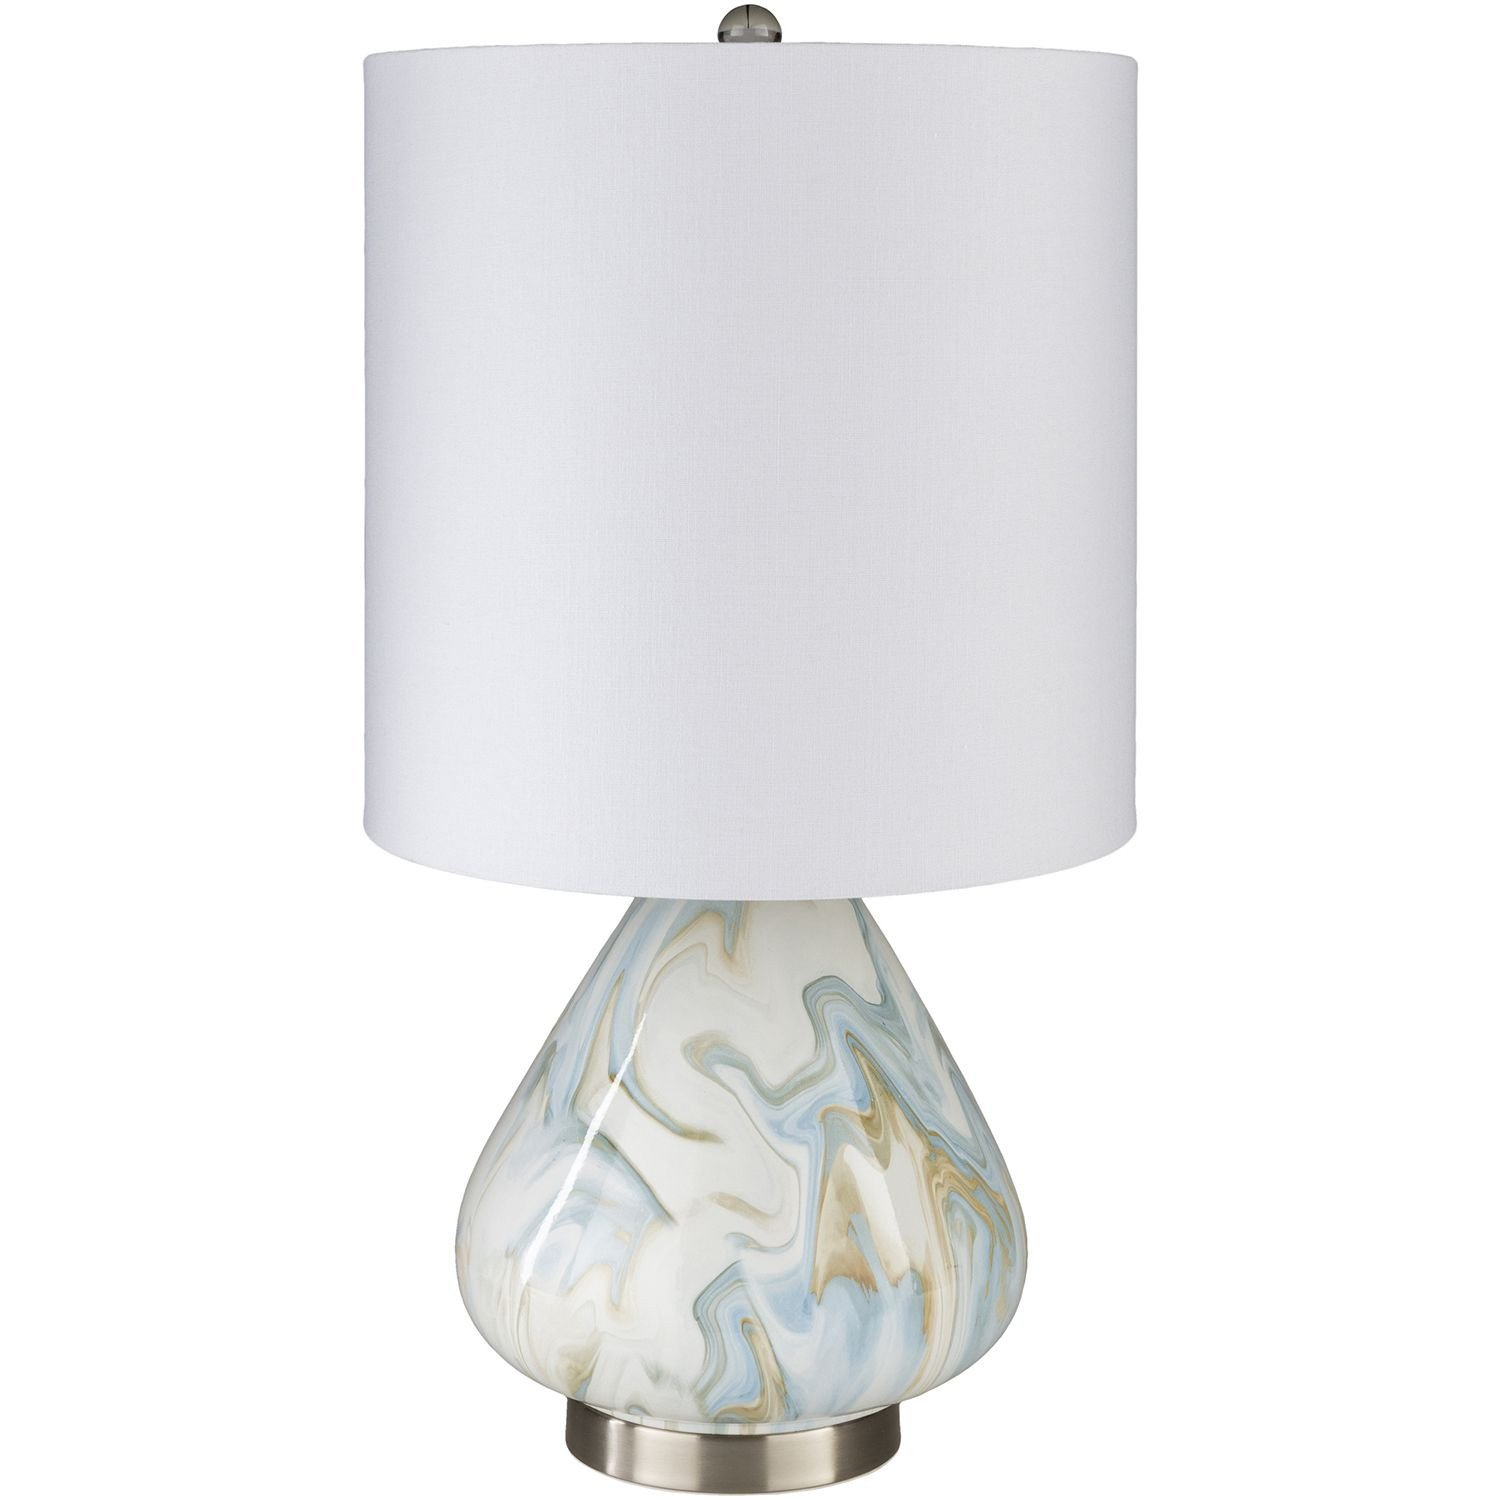 White Table Lamps Bedroom Inspirational Surya orleans White and Blue E Light Table Lamp In 2019